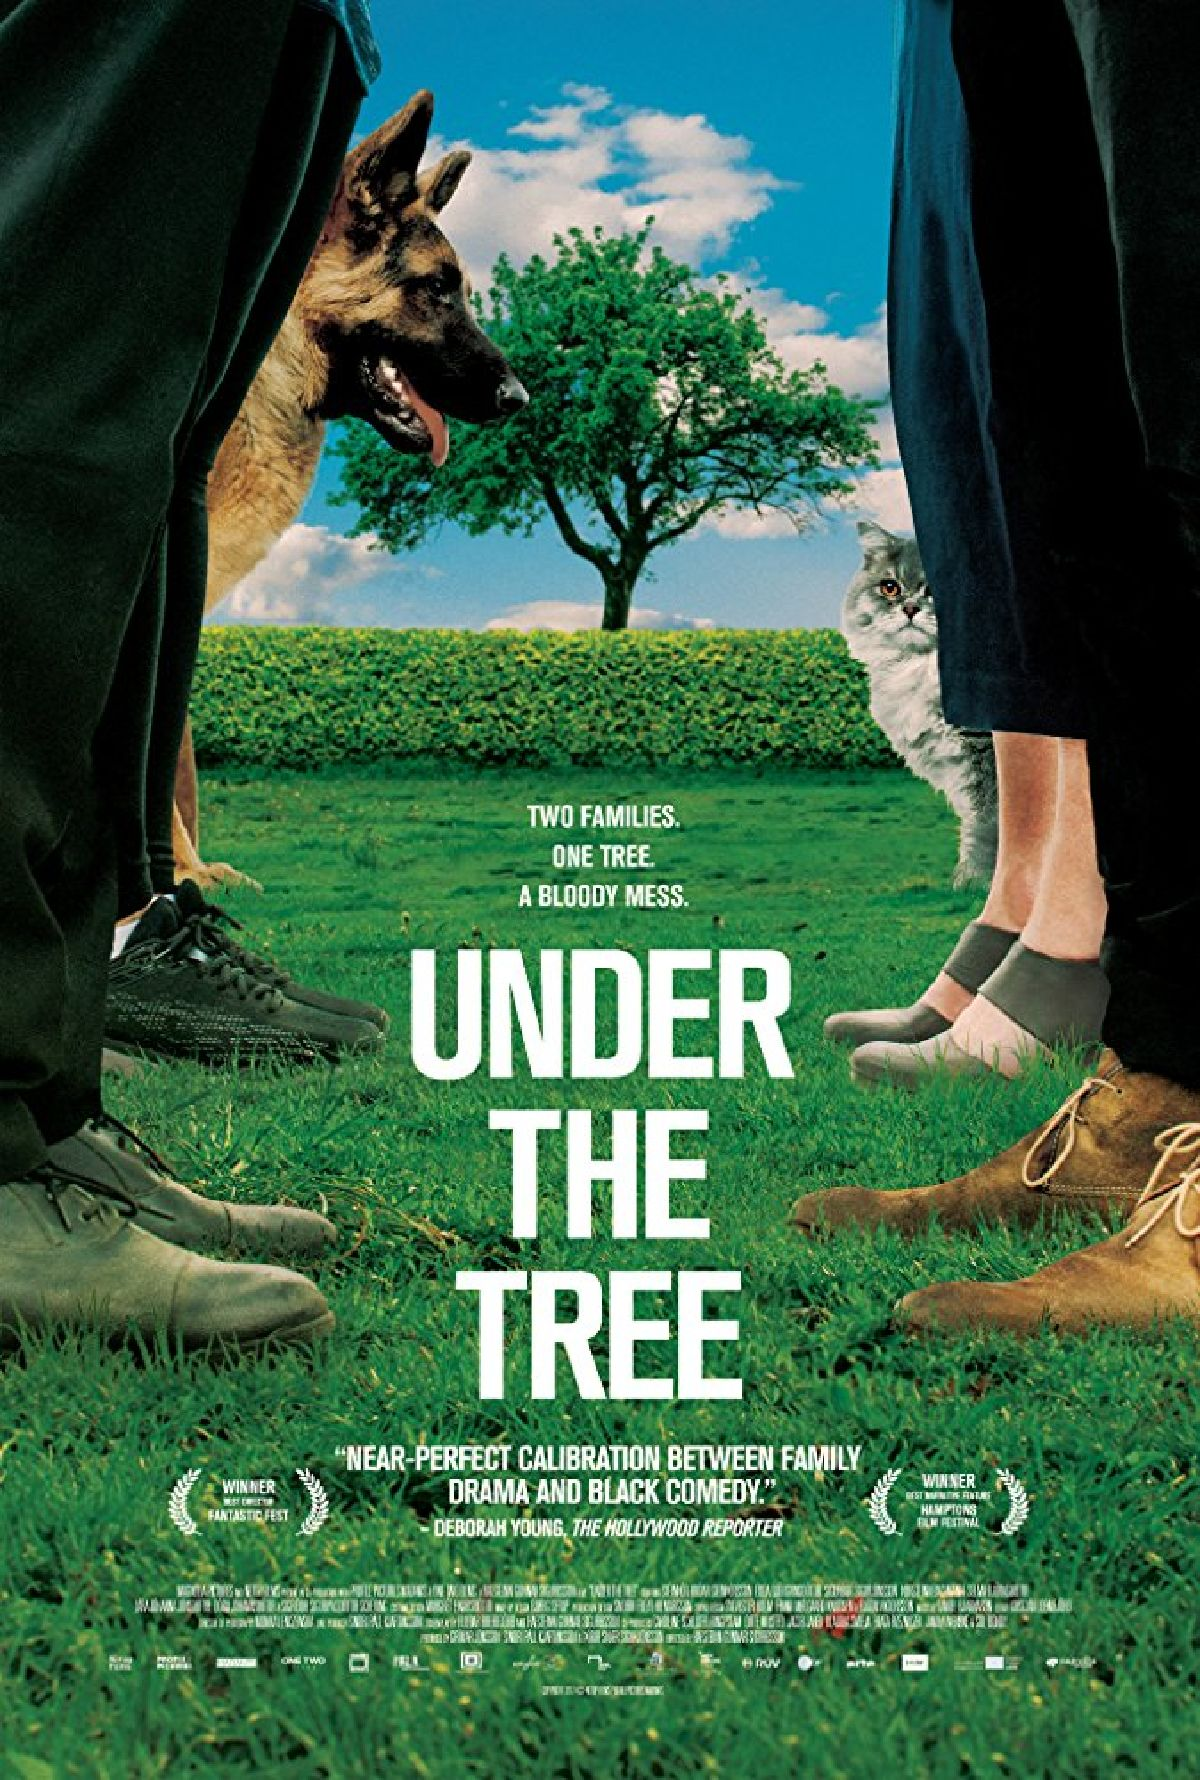 'Under The Tree' movie poster